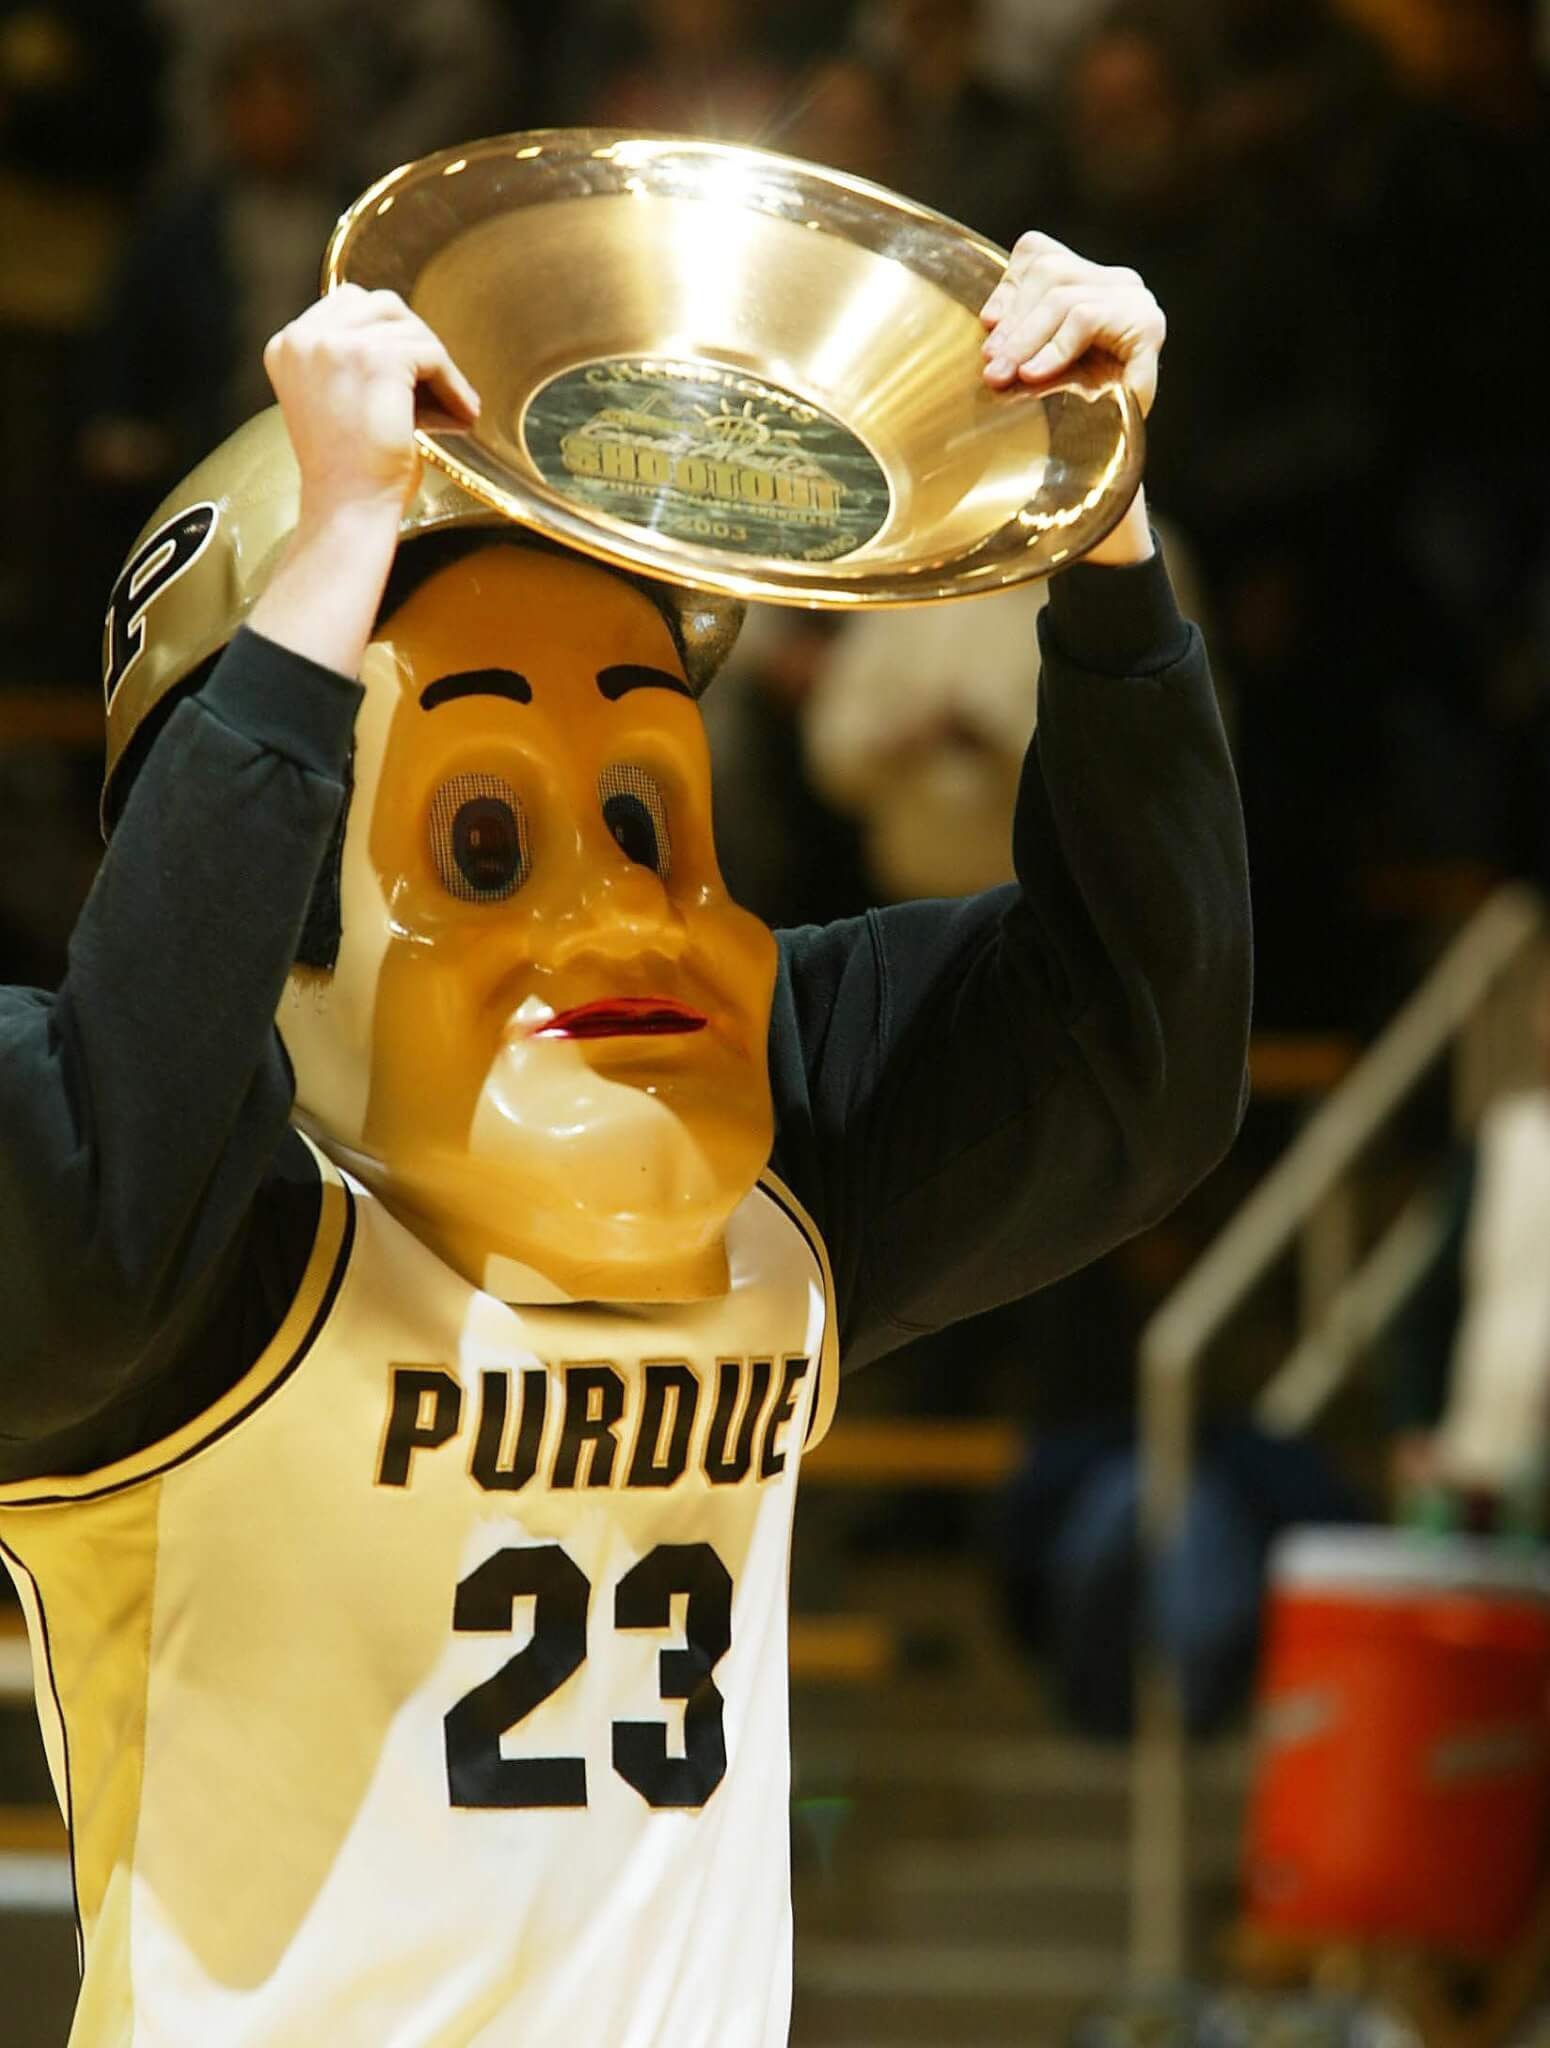 Andy Fordice as Purdue Pete